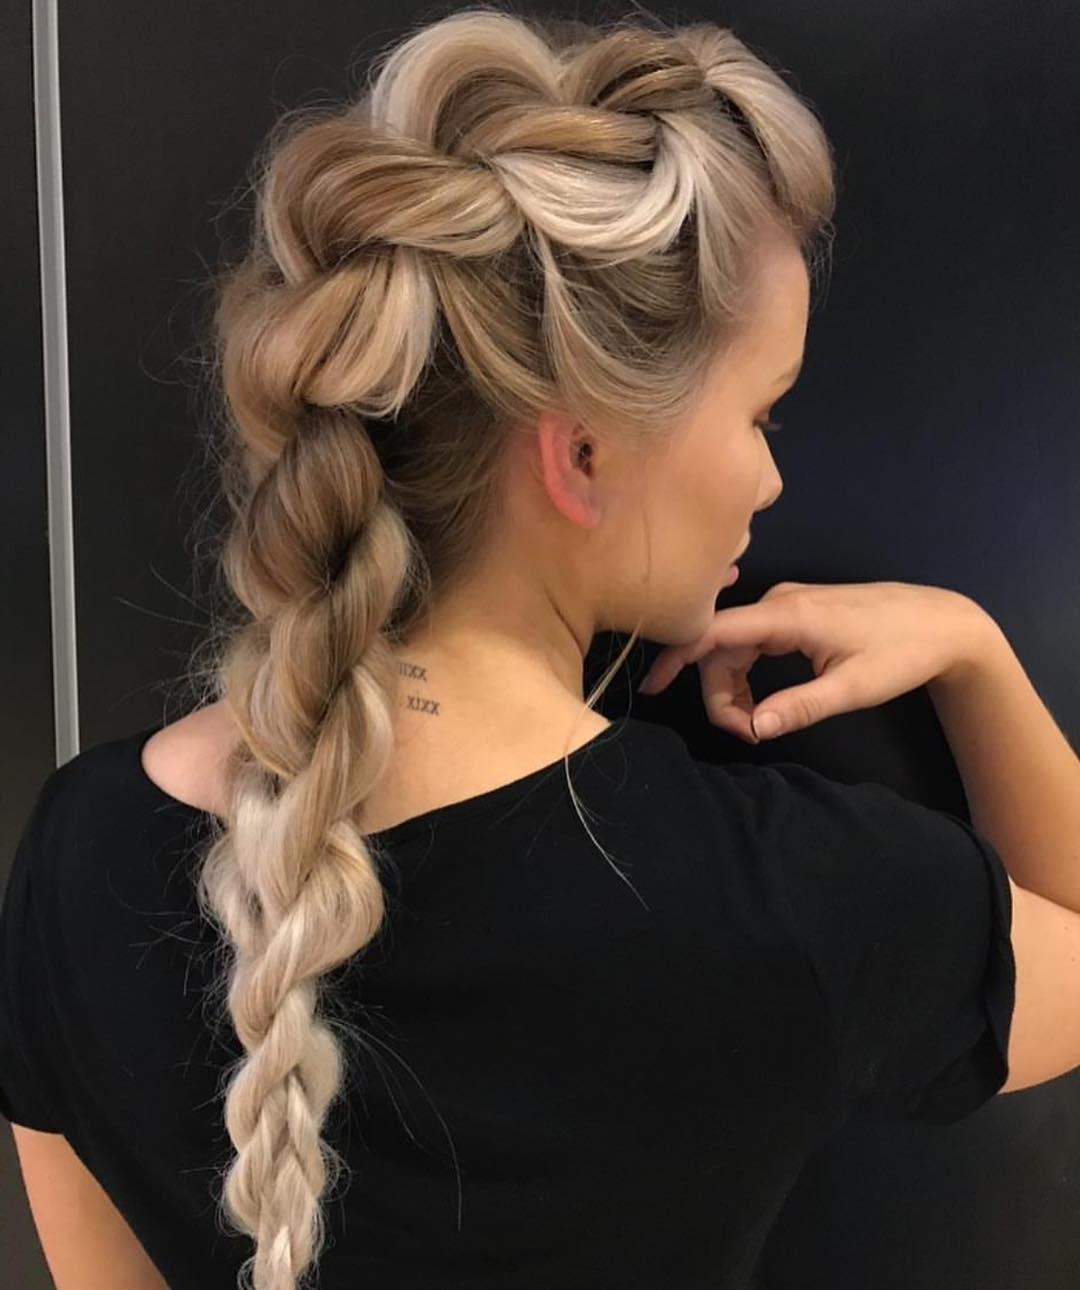 10 Braided Hairstyles For Long Hair – Weddings, Festivals & Holiday For Famous Long Braided Hairstyles (View 10 of 15)